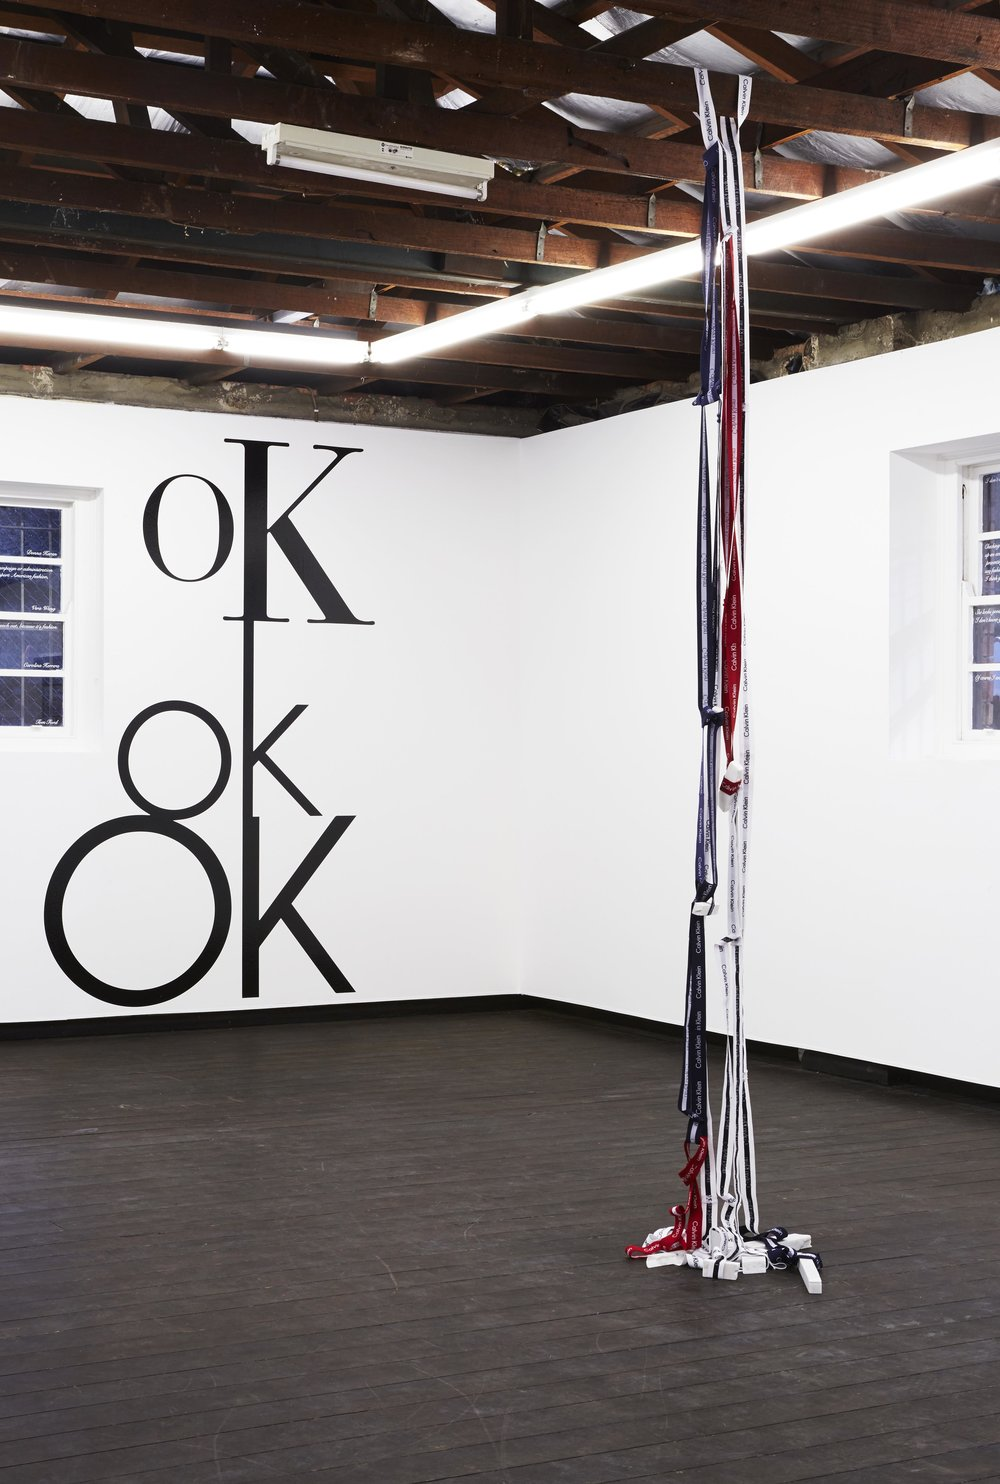 Nothing comes between  (foreground), 2017, reconfigured Calvin Klein underwear, marble; and  oK ok OK  (background), 2017, site-specific computer-cut vinyl, altered Calvin Klein logos, installation view,  Coconut Republic , Firstdraft, Sydney. Photo: Zan Wimberley. Copyright JD Reforma